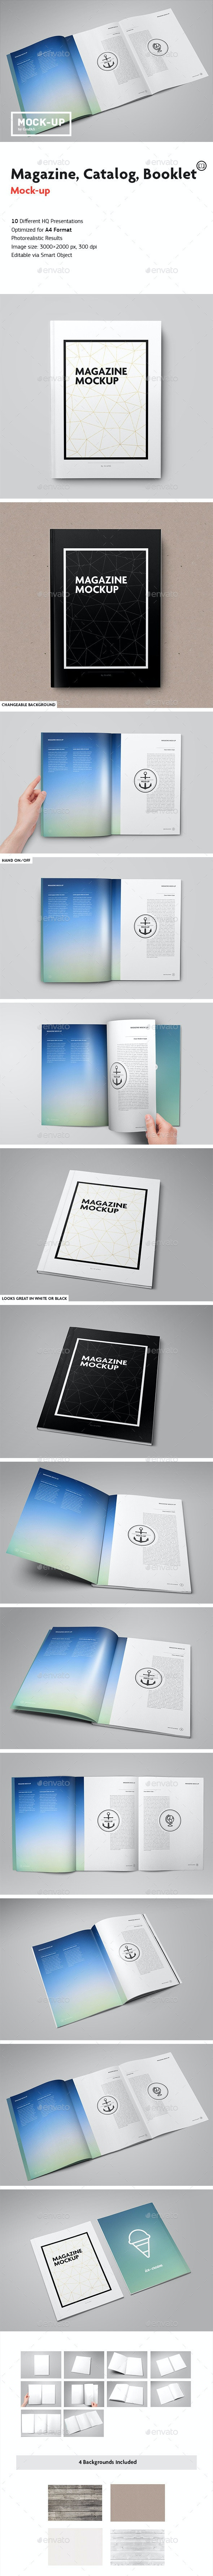 Magazine / Catalog / Booklet Mock-Up - Magazines Print